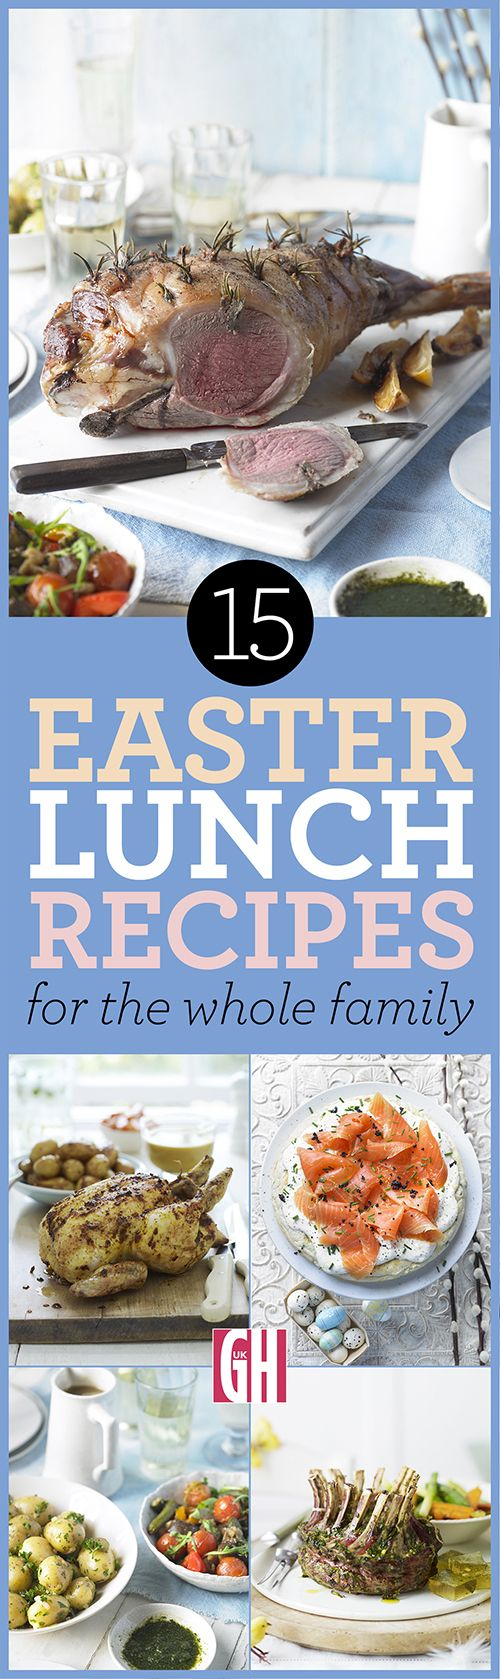 Whether you're looking for a classic roast leg of lamb with a side of Spring vegetables, minted pesto and a light potato salad, or something slightly more alternative, one of these Easter recipes is sure to catch your eye.